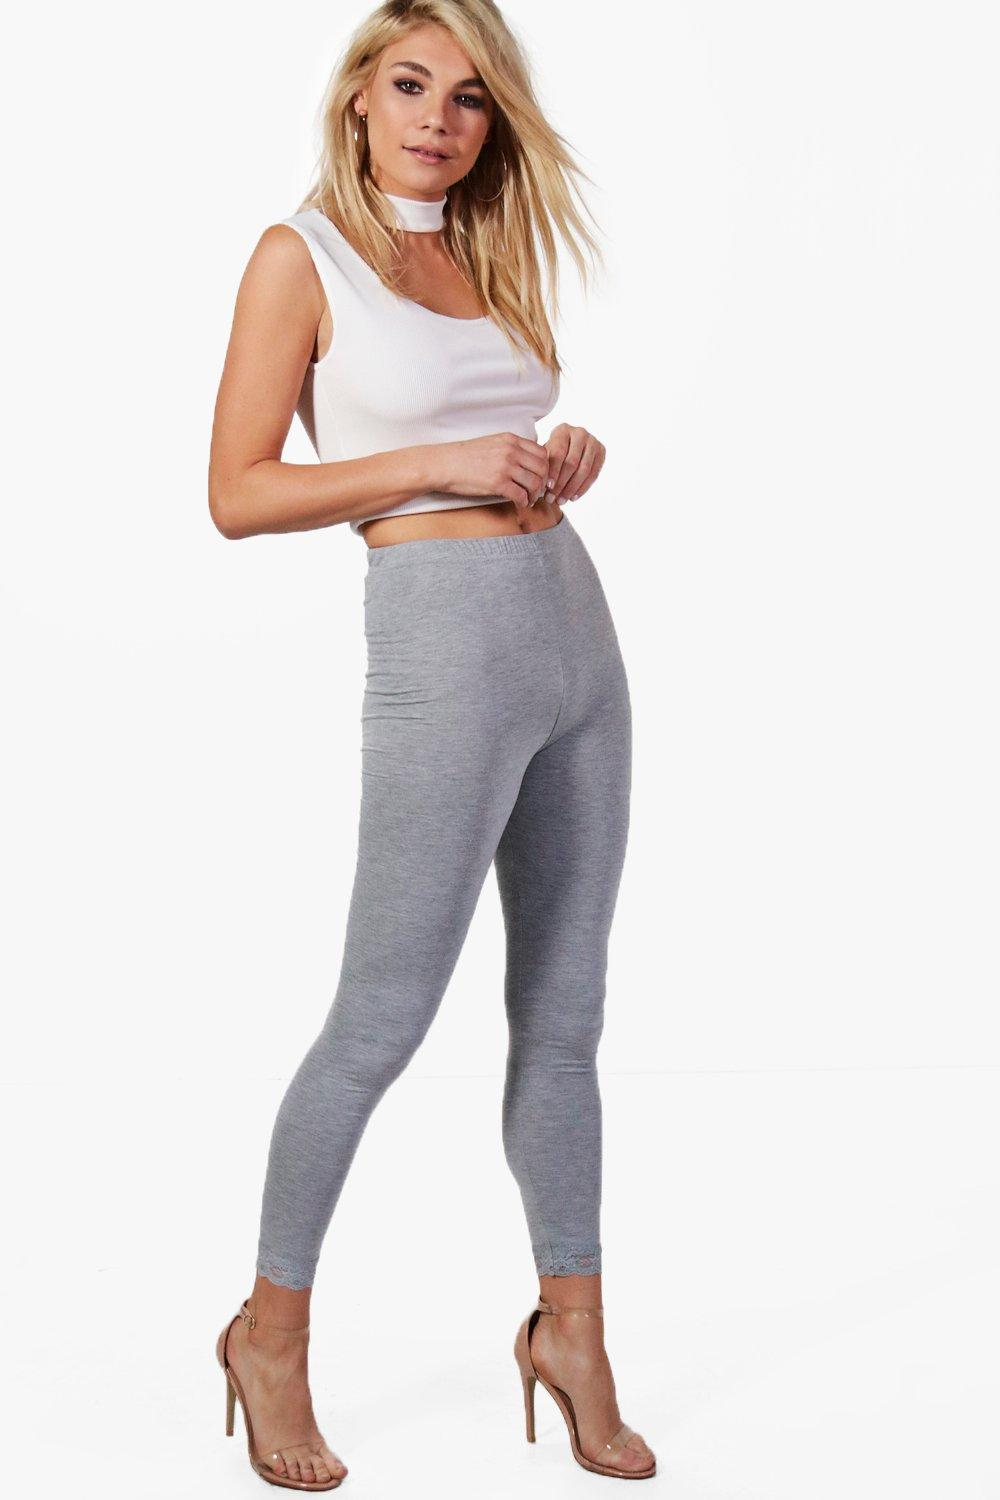 Nora Lace Trim Ankle Grazer Leggings grey marl